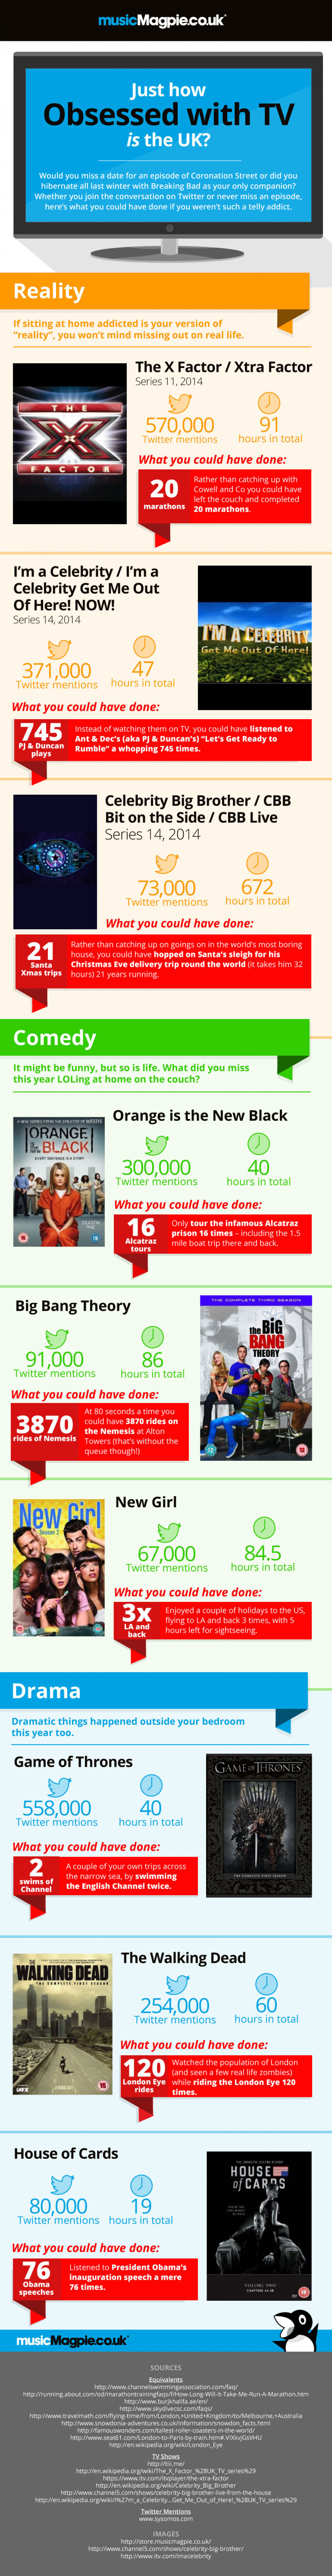 How addicted to TV is the UK? Infographic